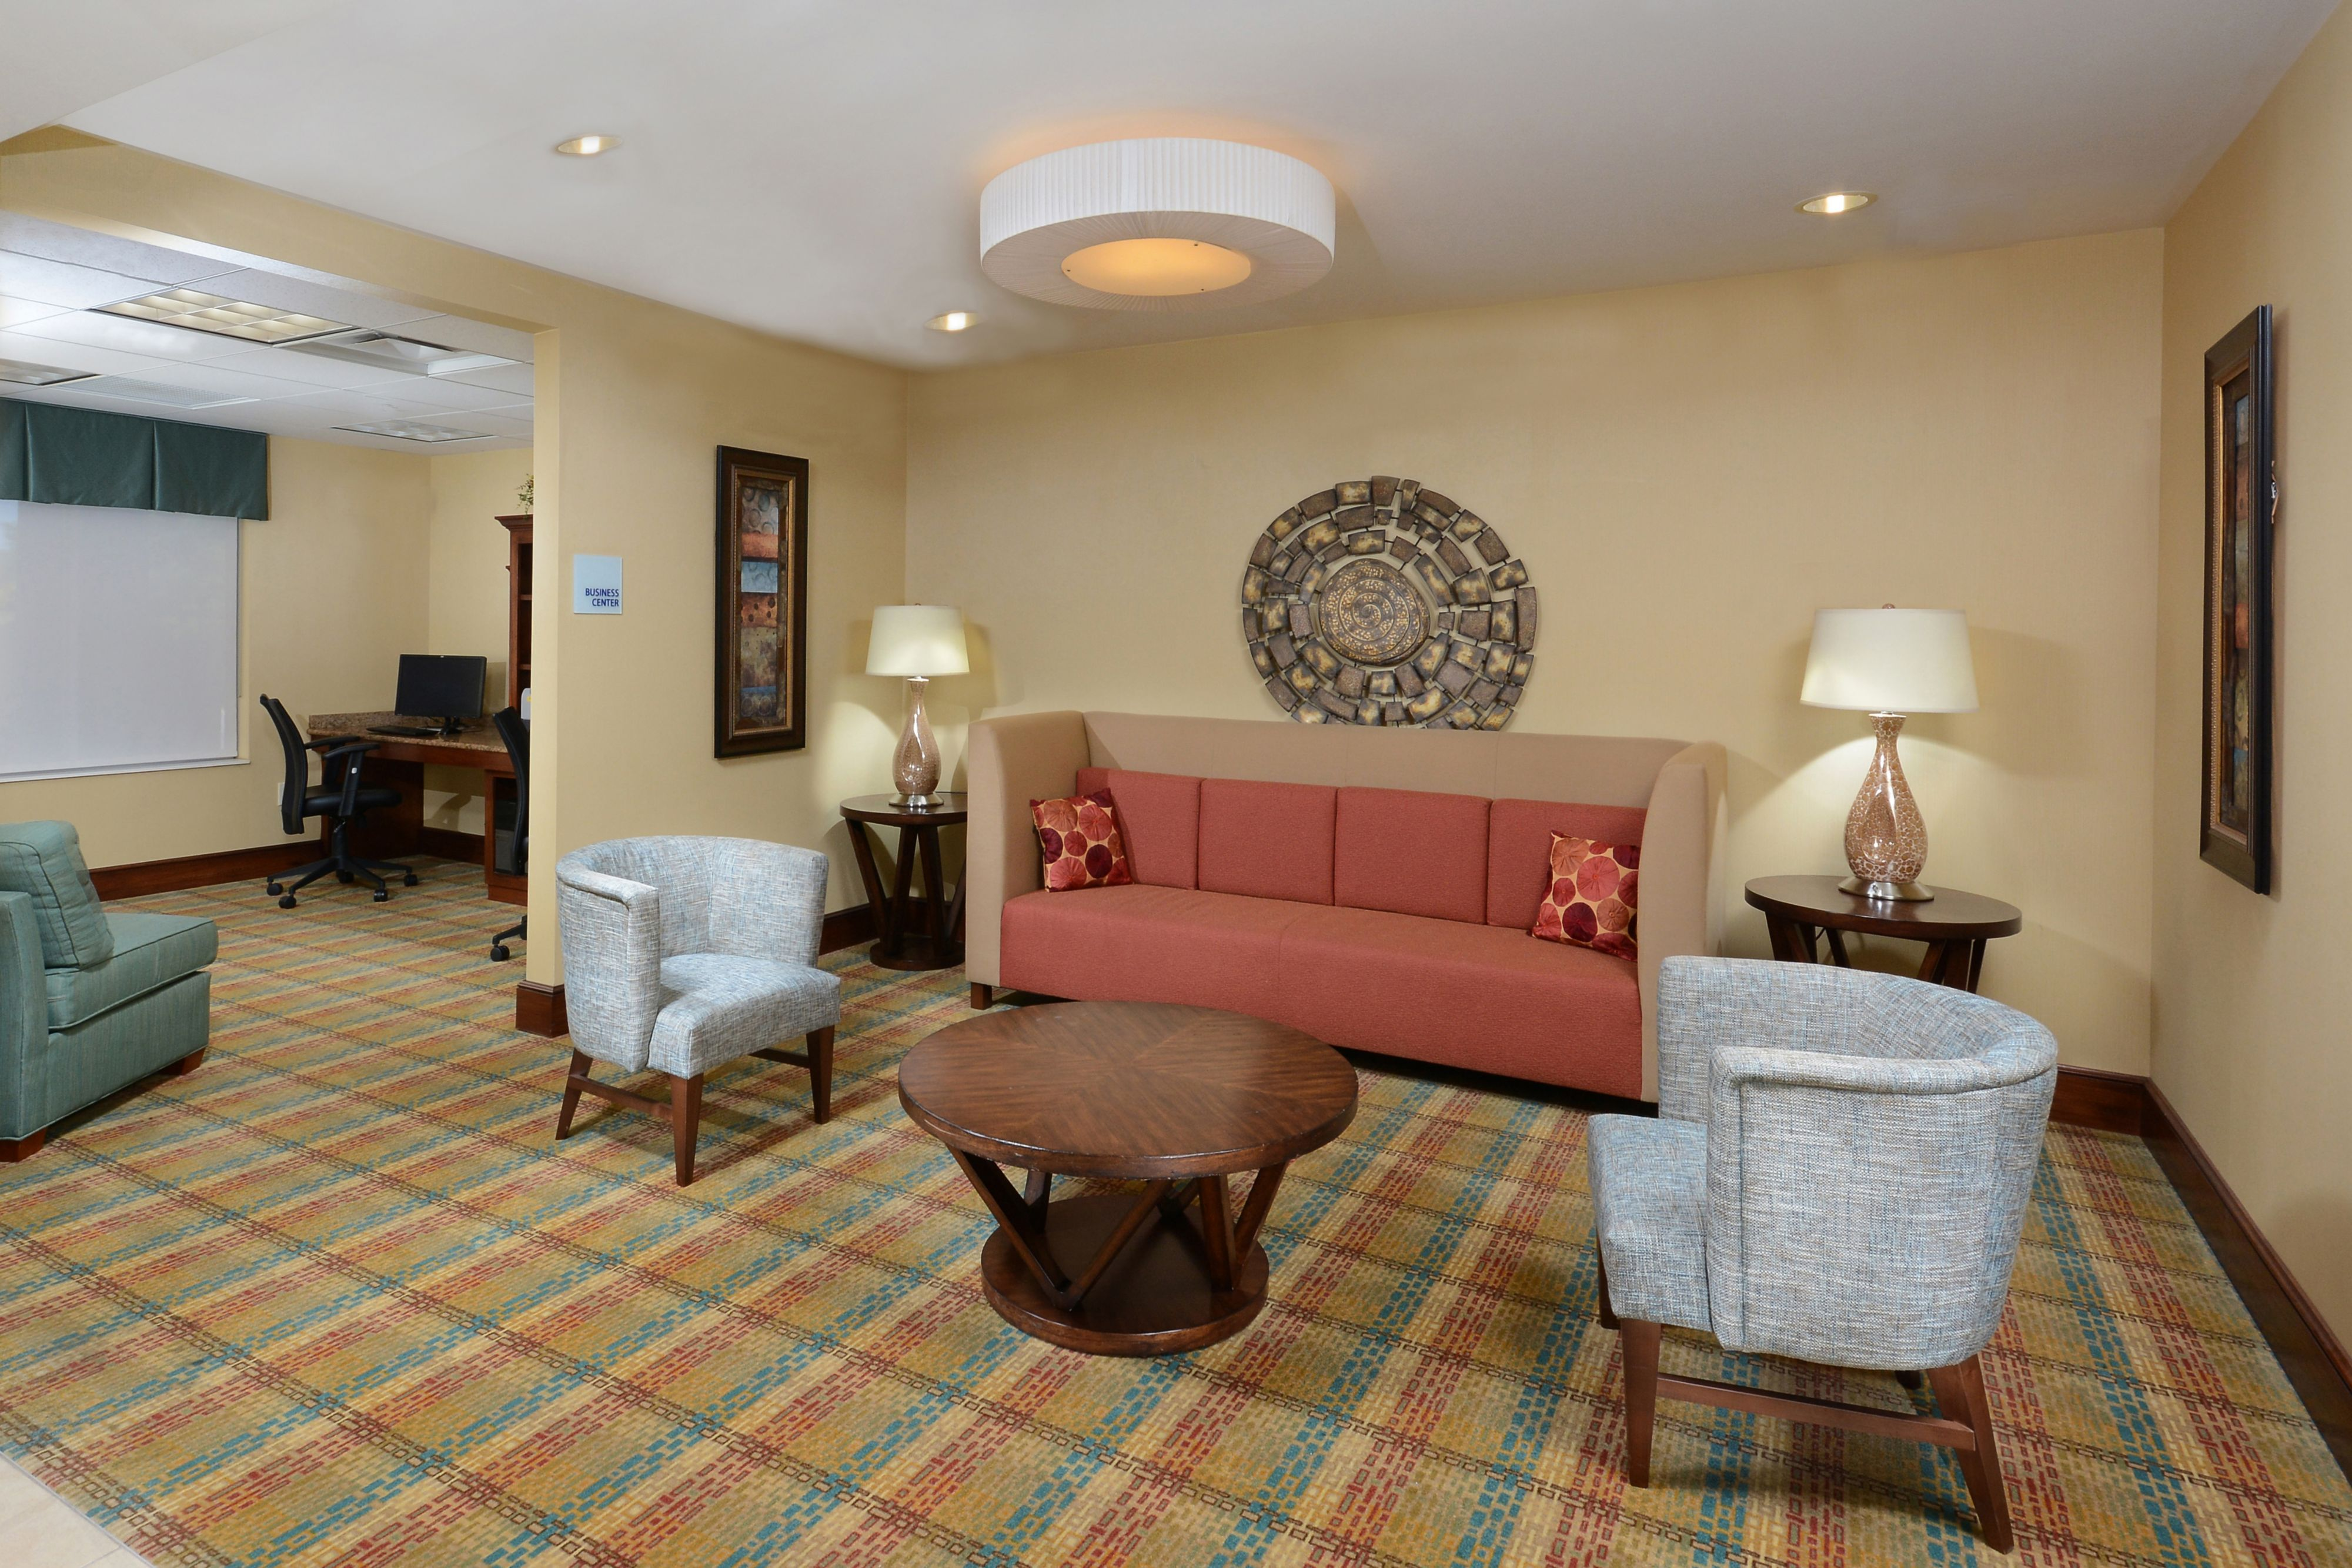 Holiday Inn Express & Suites Greensboro - Airport Area image 4